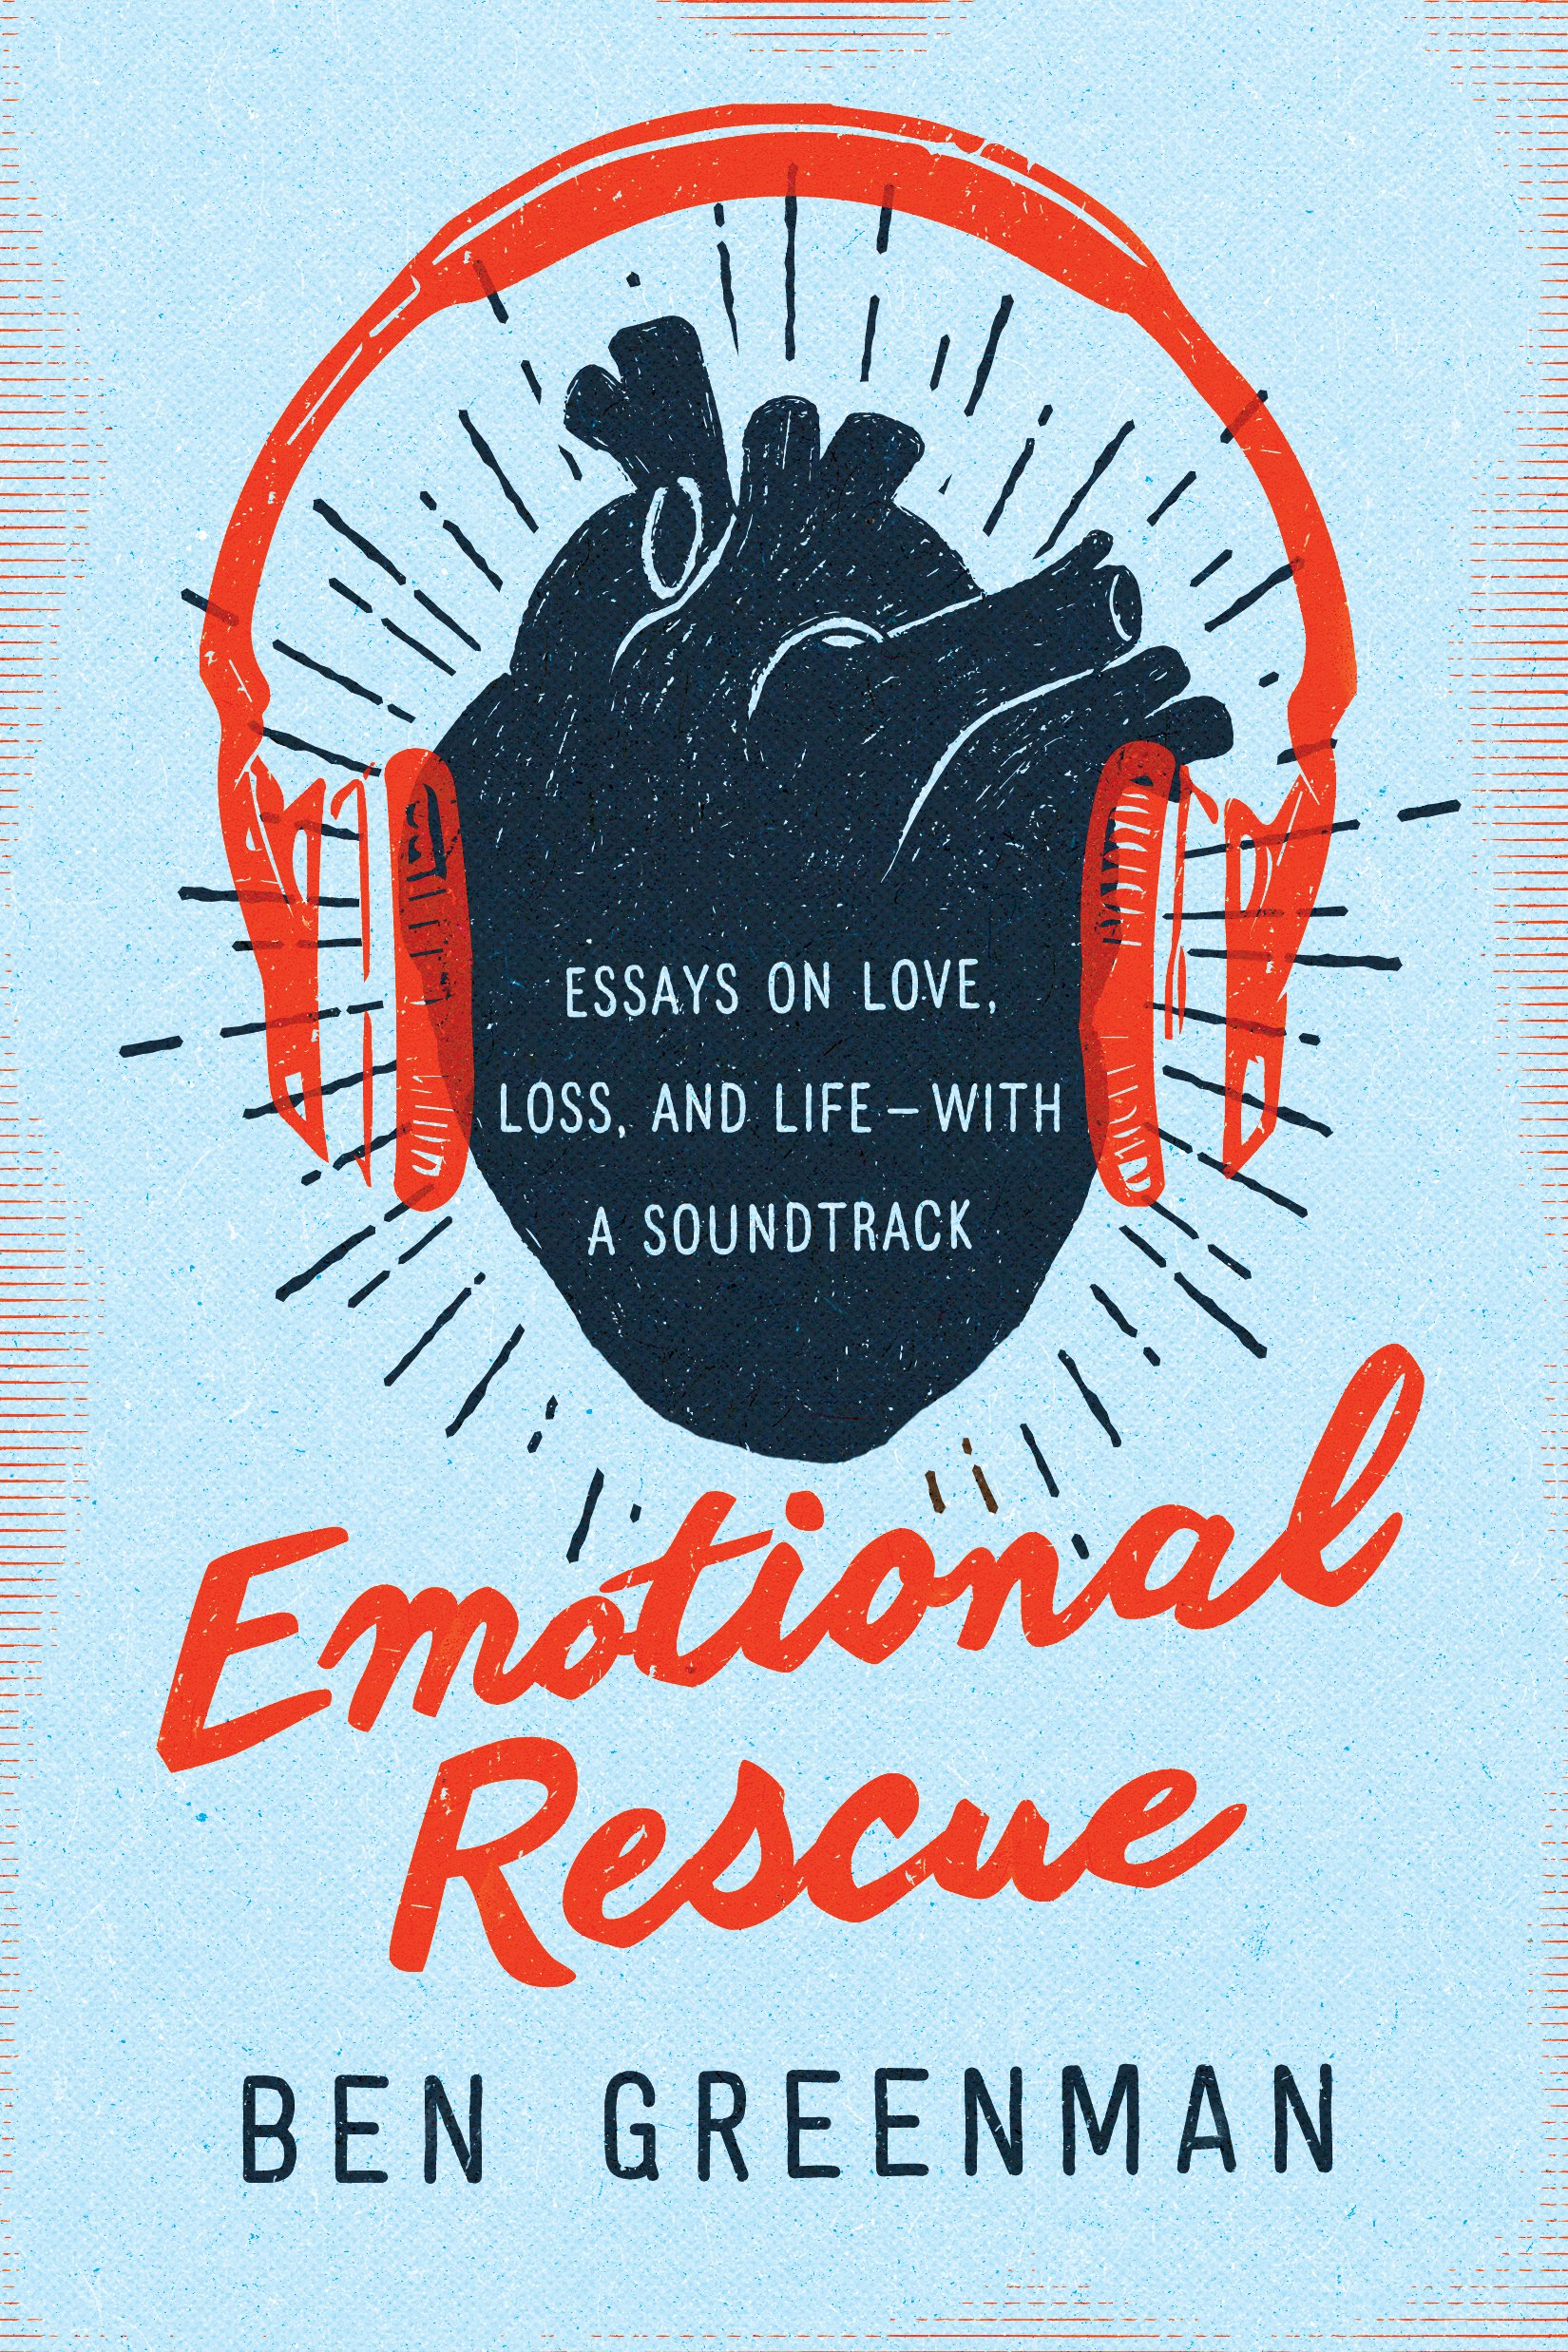 emotional rescue essays on love loss and life a emotional rescue essays on love loss and life a soundtrack ben greenman 9781503934986 com books